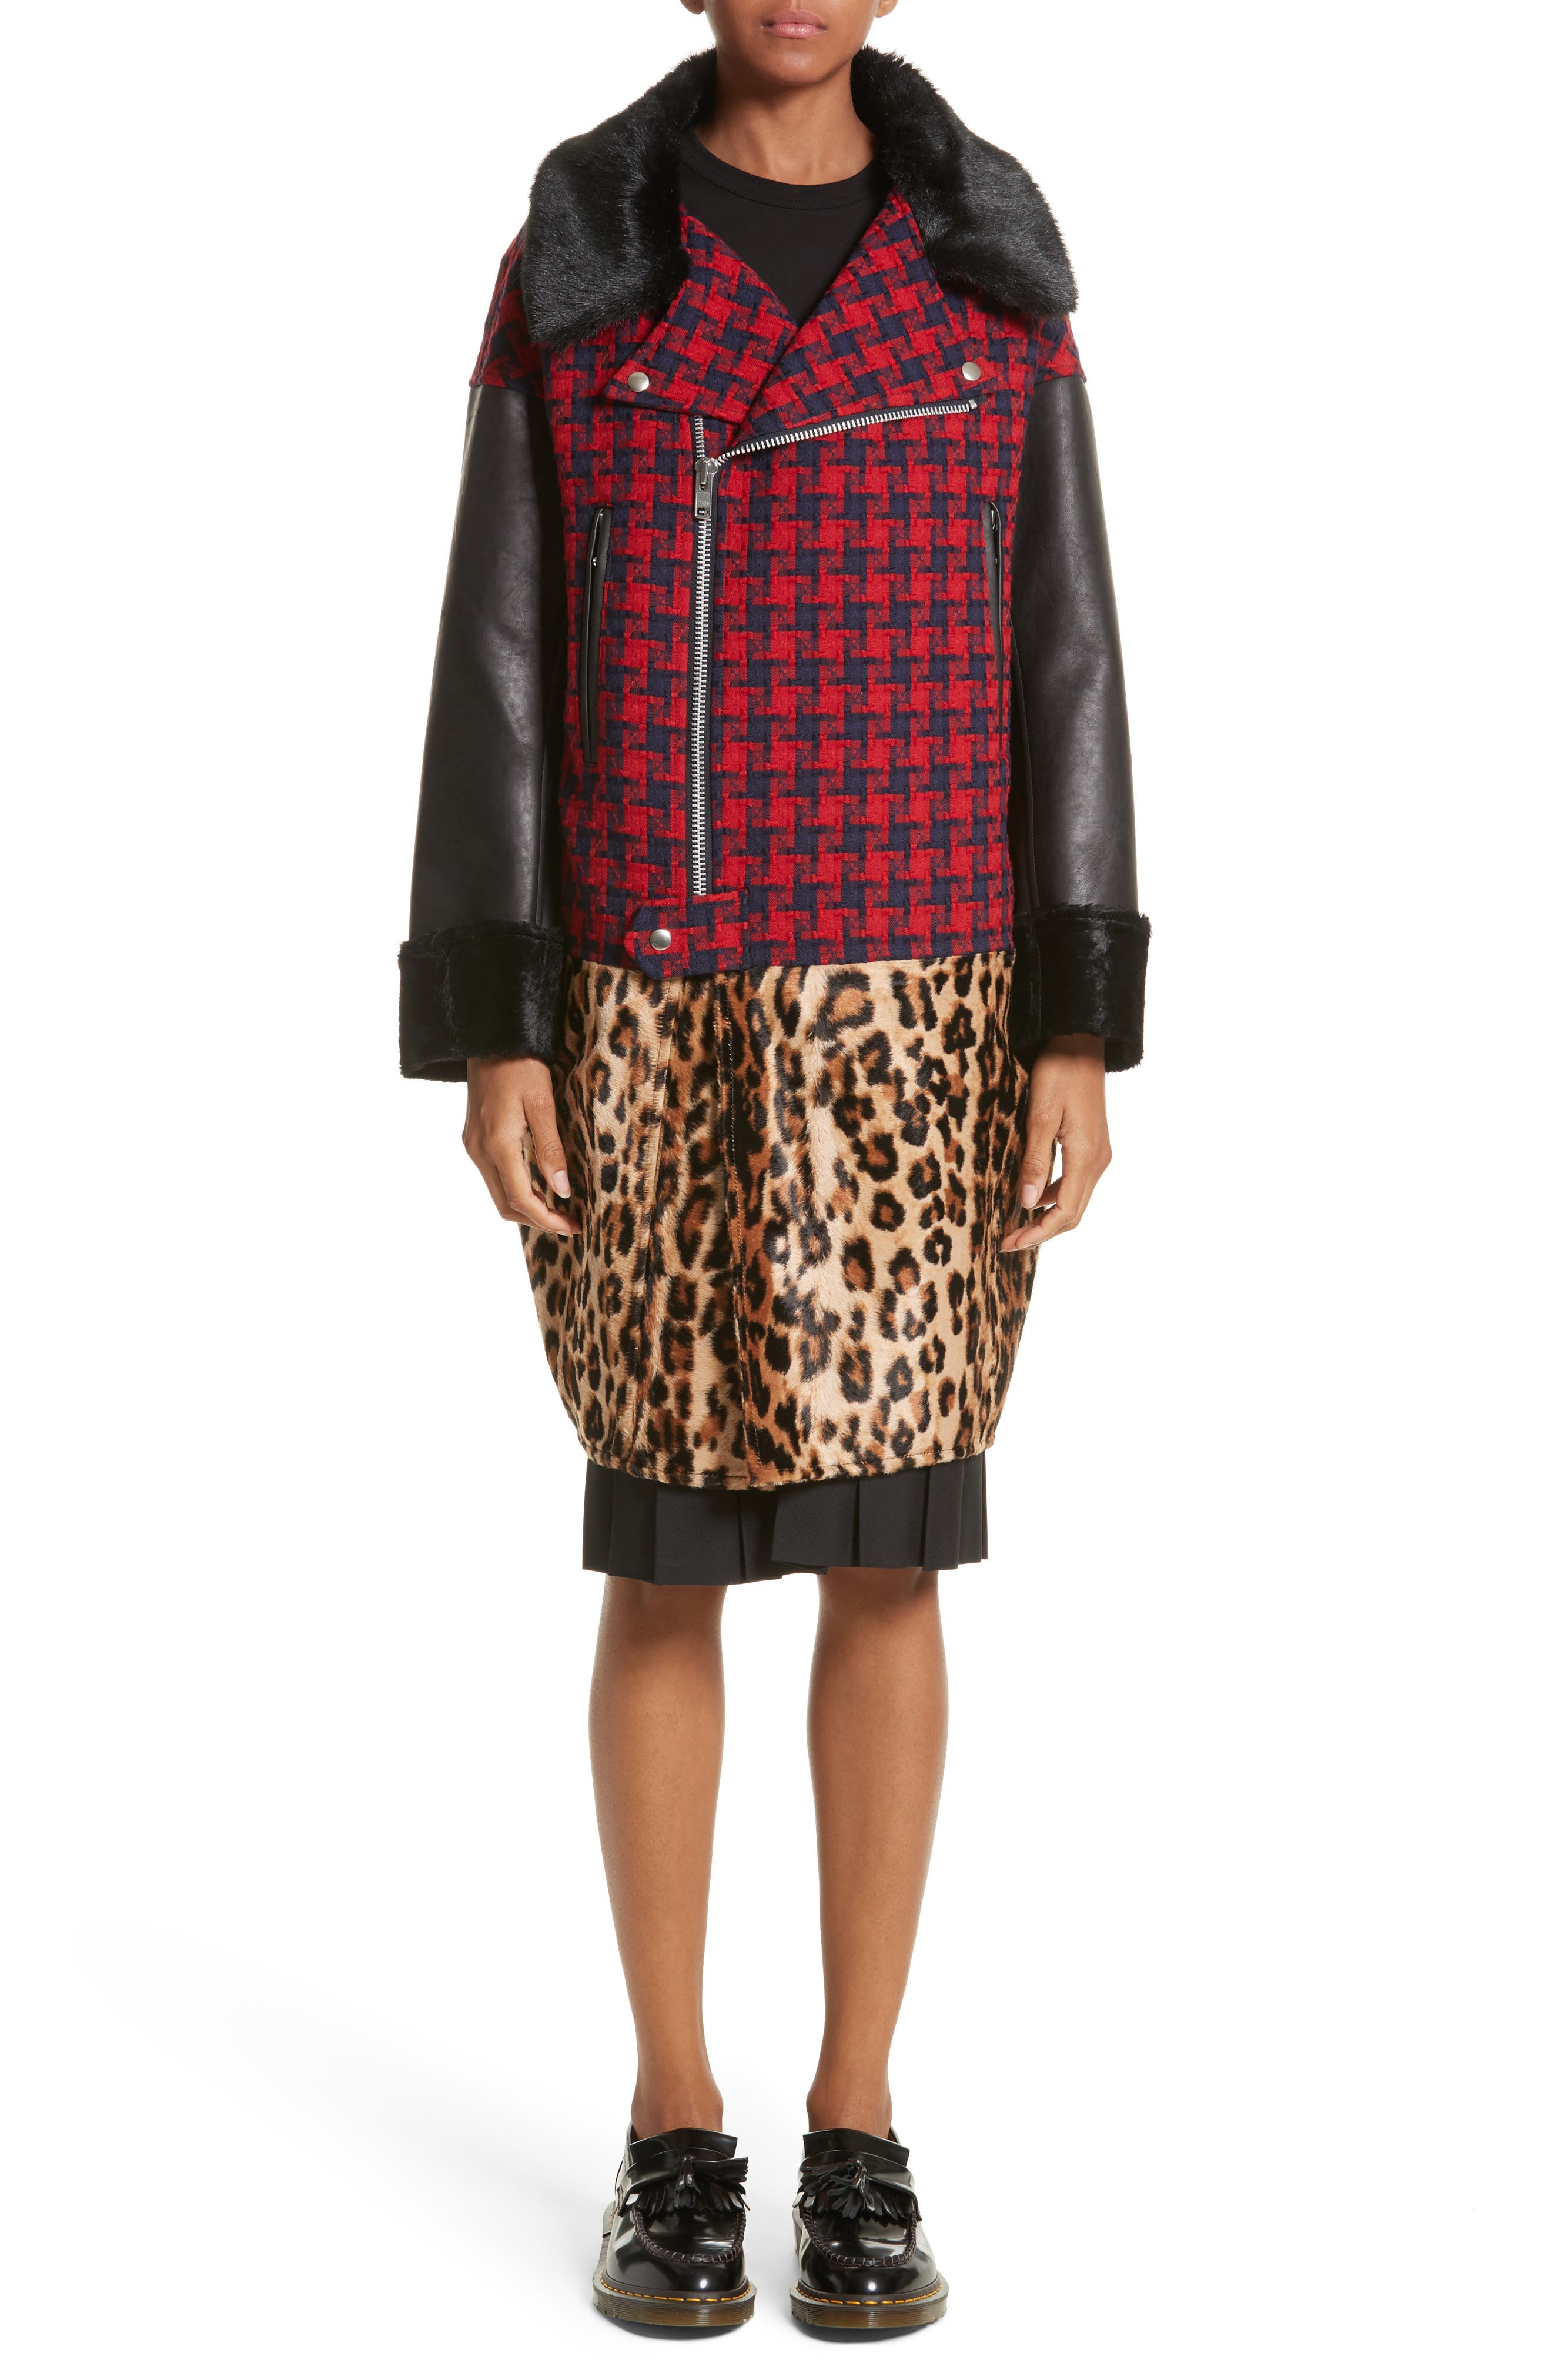 Buffalo Check Moto Jacket with Faux Fur Trim,                         Main,                         color, Red/Nvy X Bge/Brn